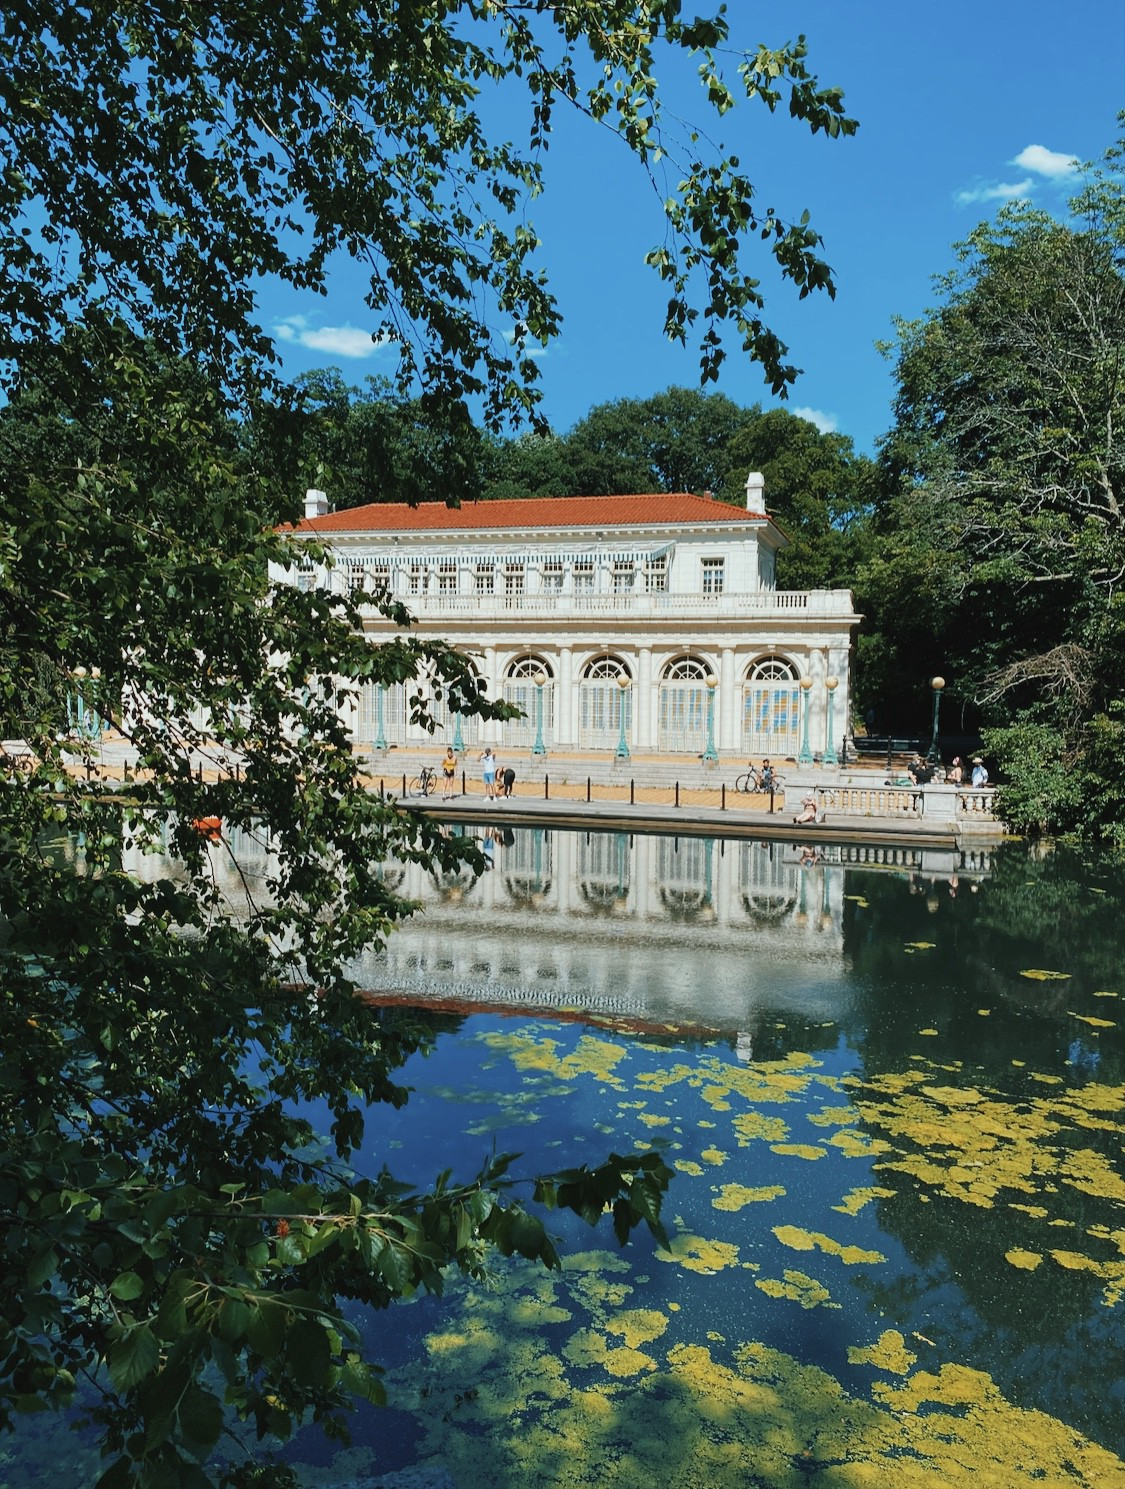 The boathouse and lake at Prospect Park.